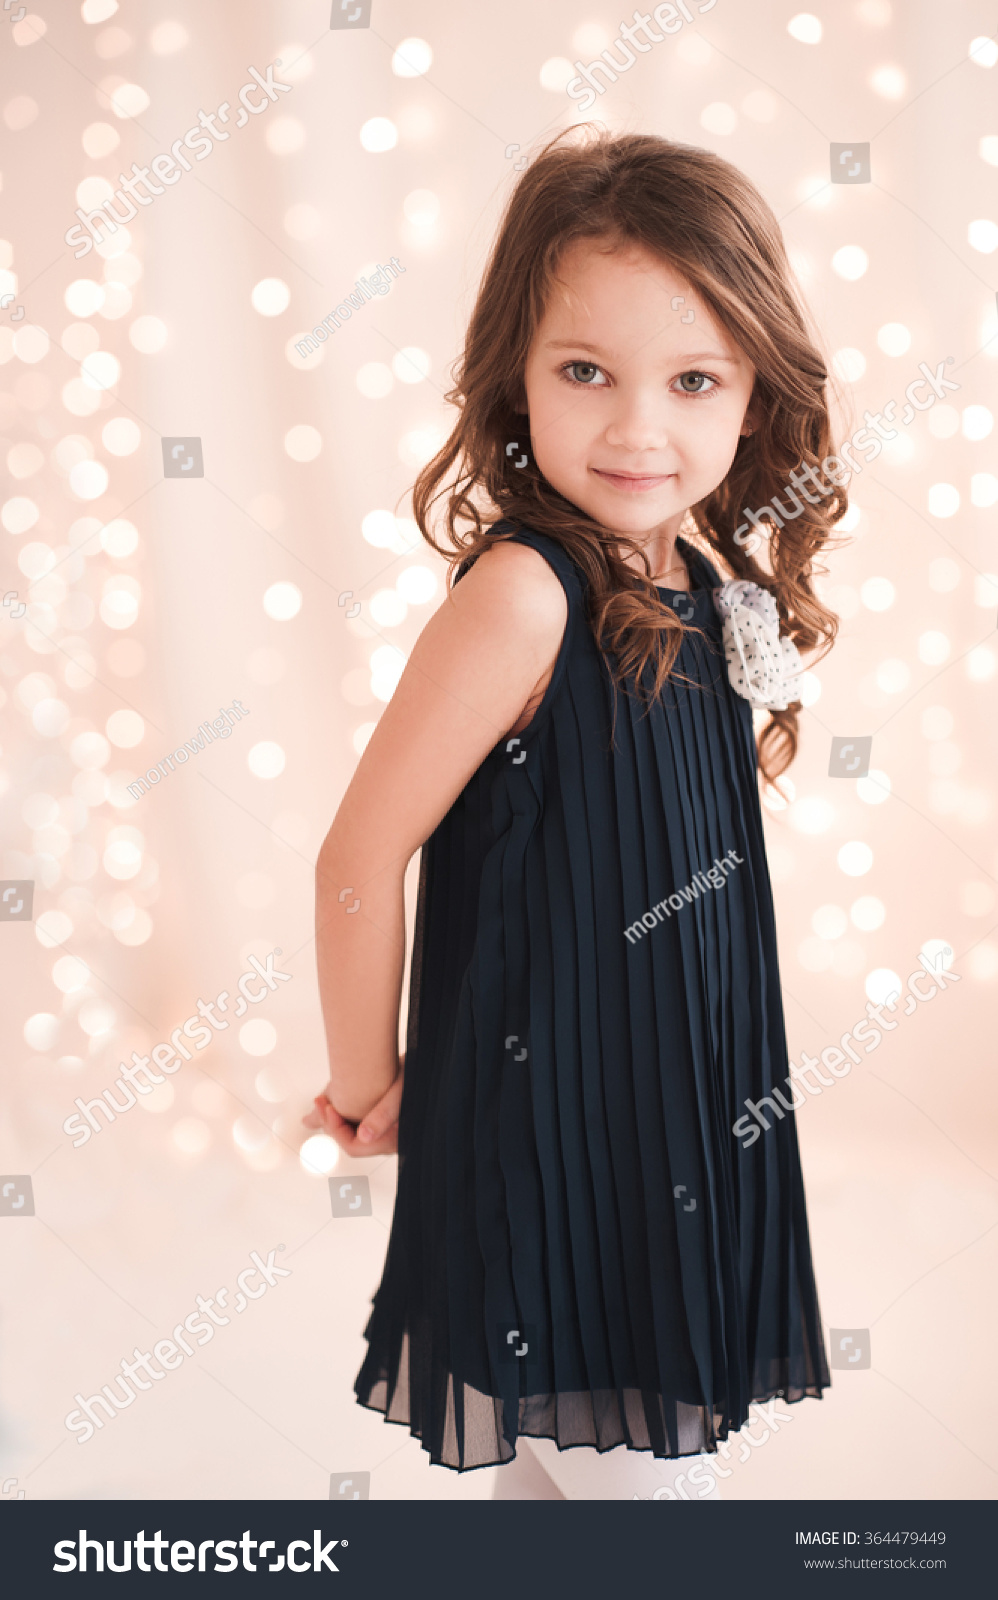 cute baby girl 56 year old stock photo (download now) 364479449